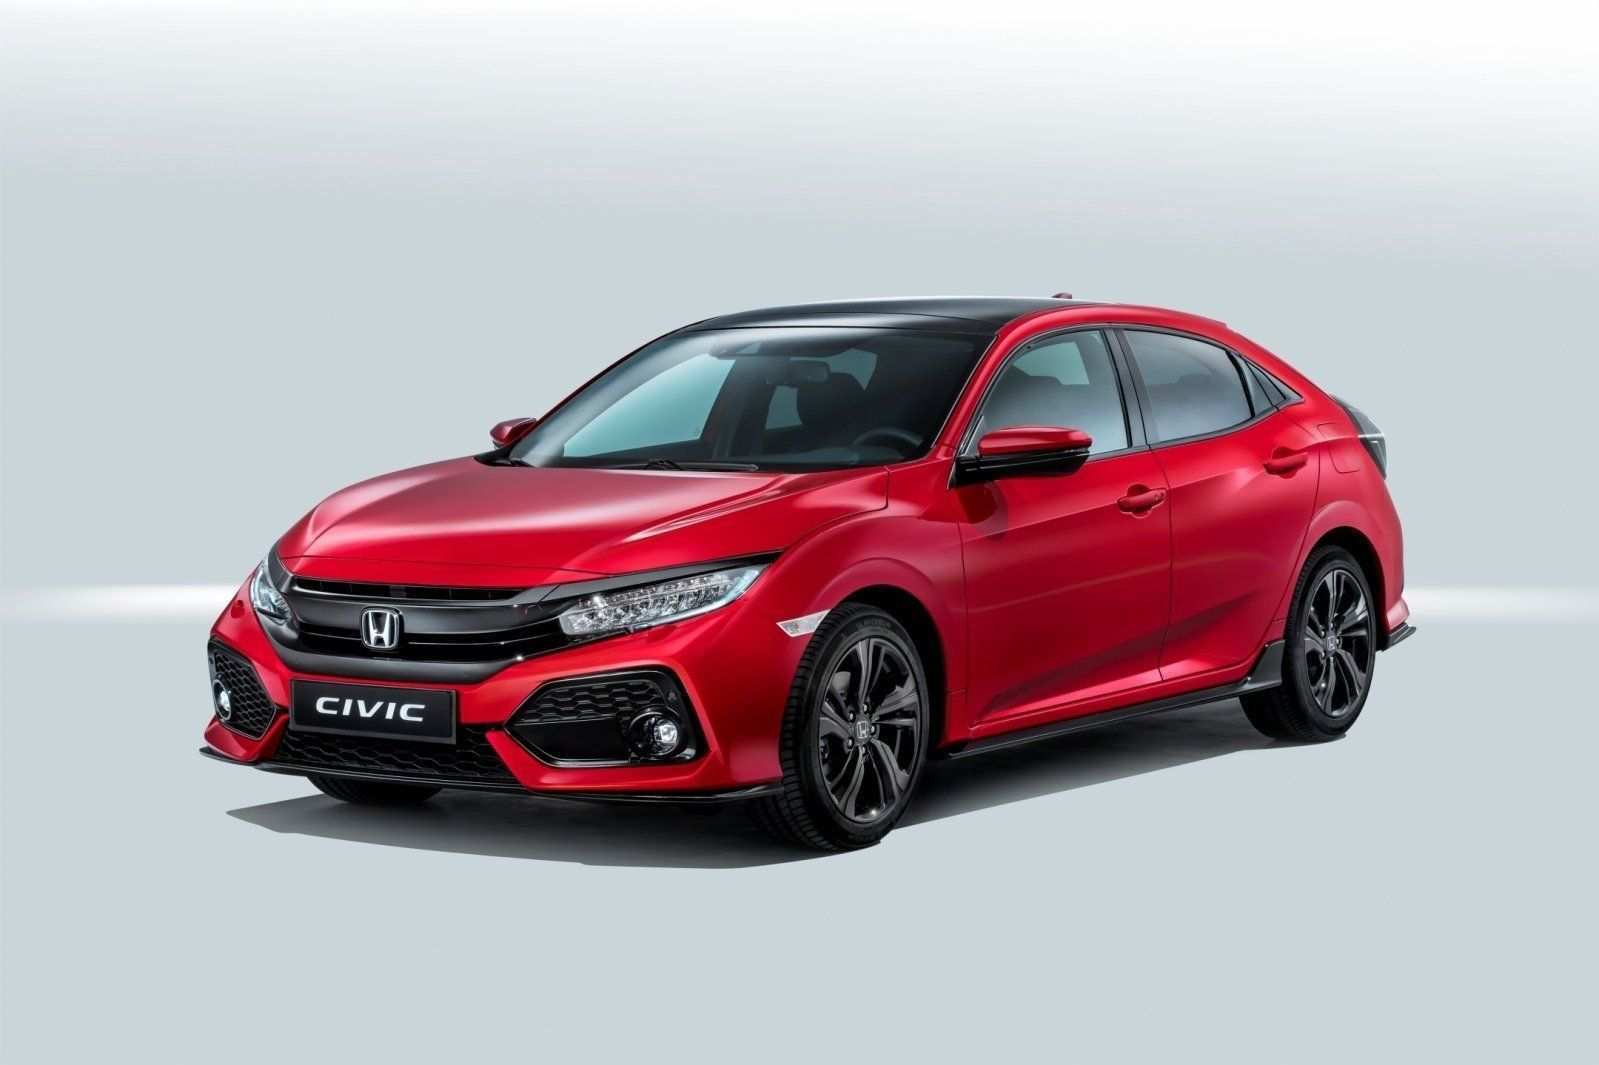 53 The Best 2019 Honda Civic Hybrid Price And Review